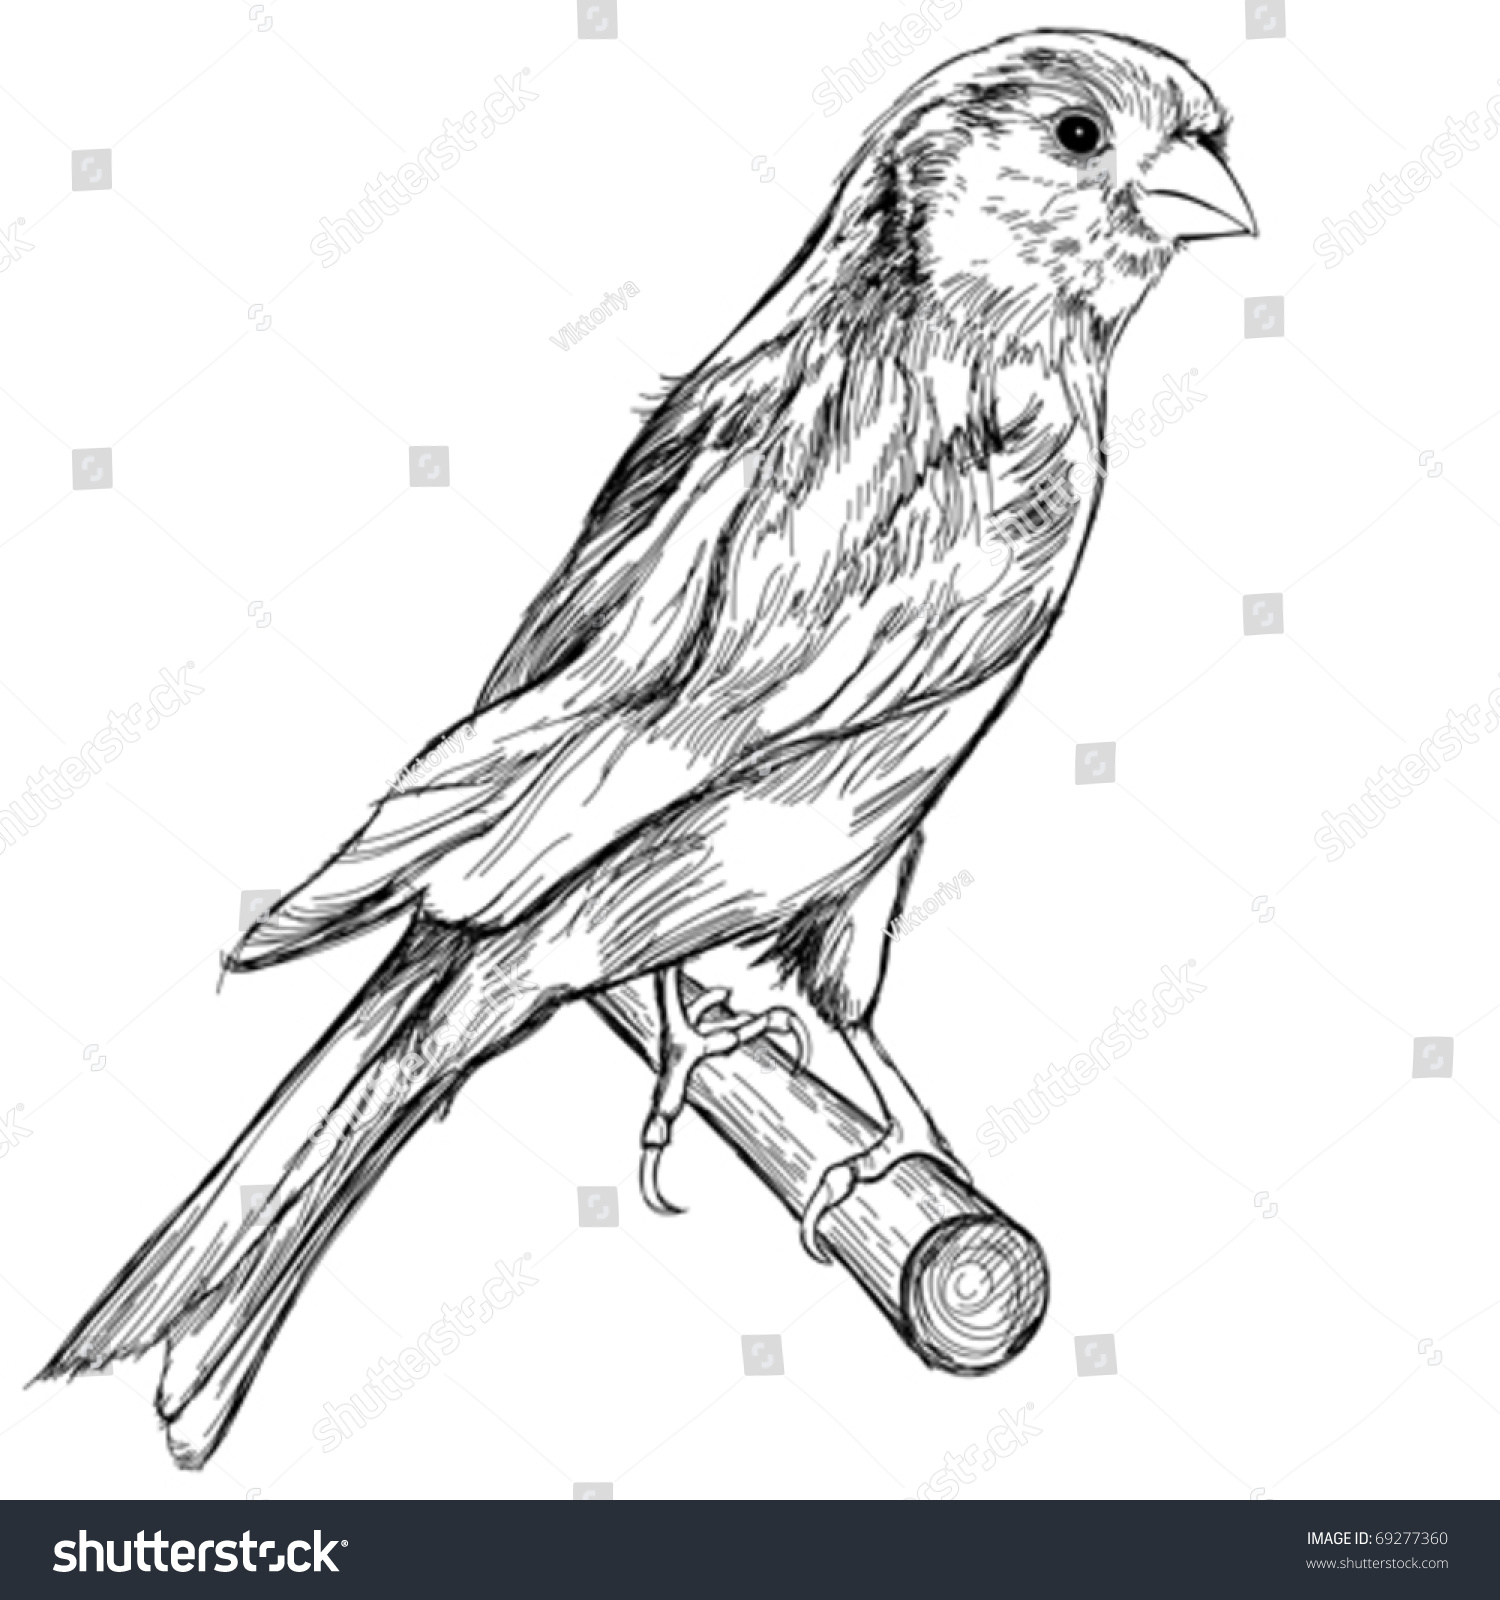 Black White Sketch Canary Bird Sitting Stock Vector 69277360 - Shutterstock